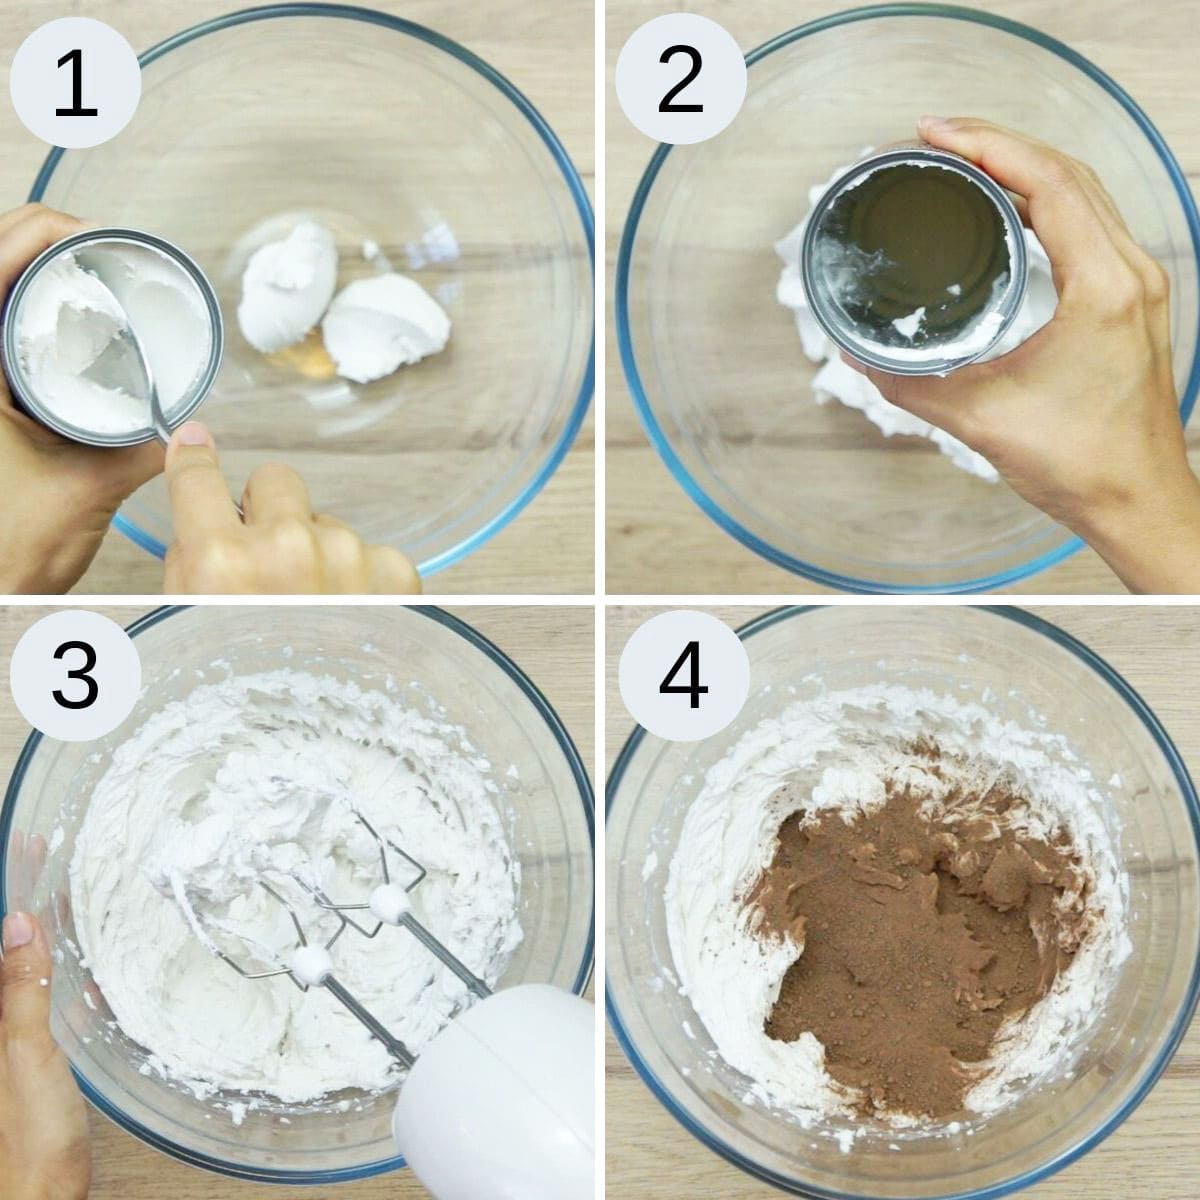 Step-by-step photos on how to make coconut whipped cream and thus vegan chocolate frosting